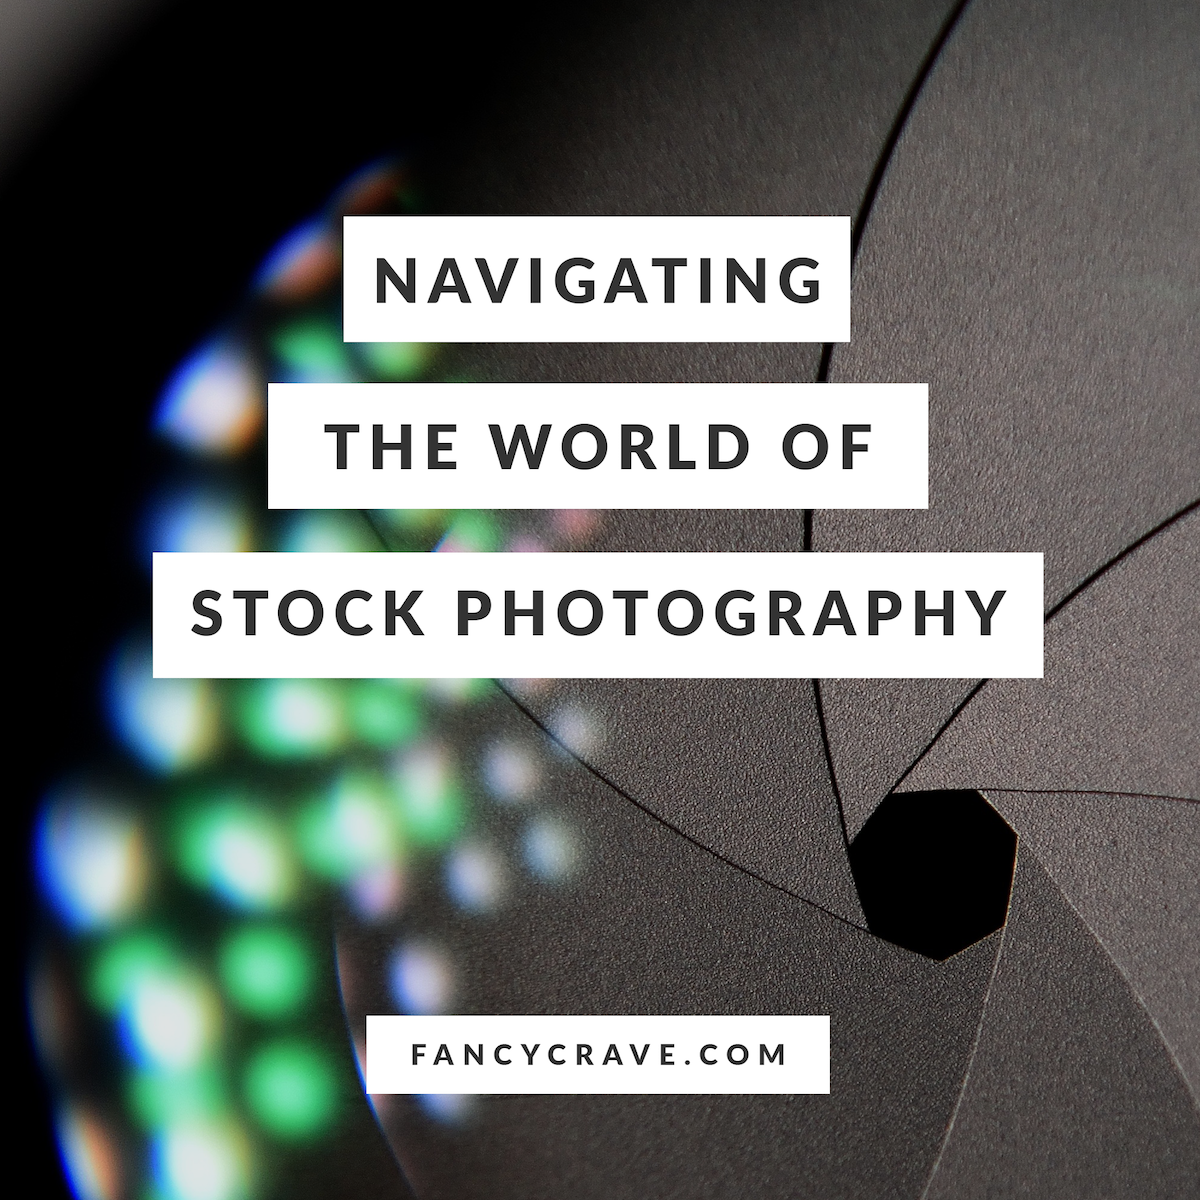 Navigating-the-world-of-Stock-photography